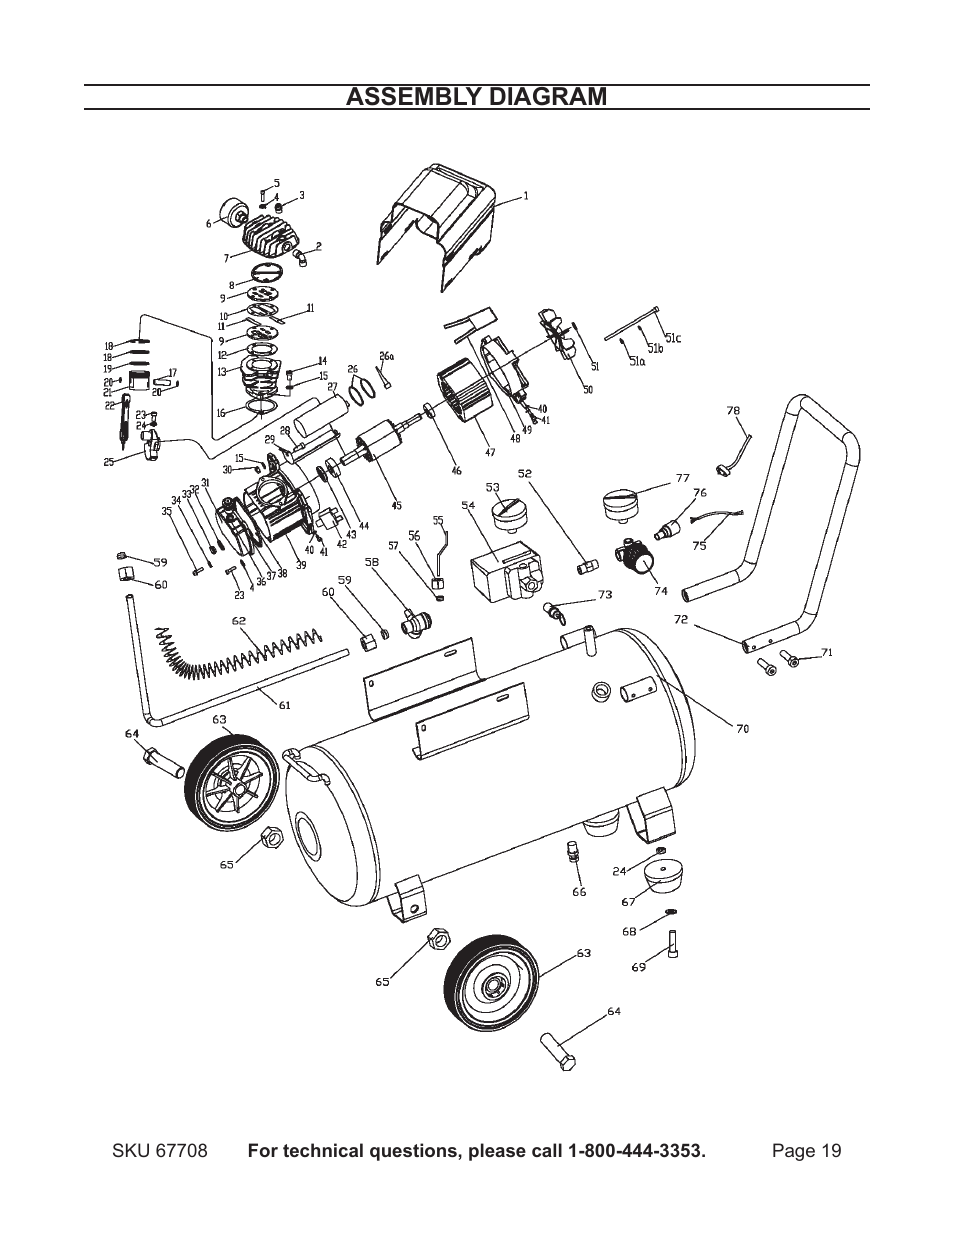 hight resolution of assembly diagram harbor freight tools air compressor 67708 user manual page 19 20